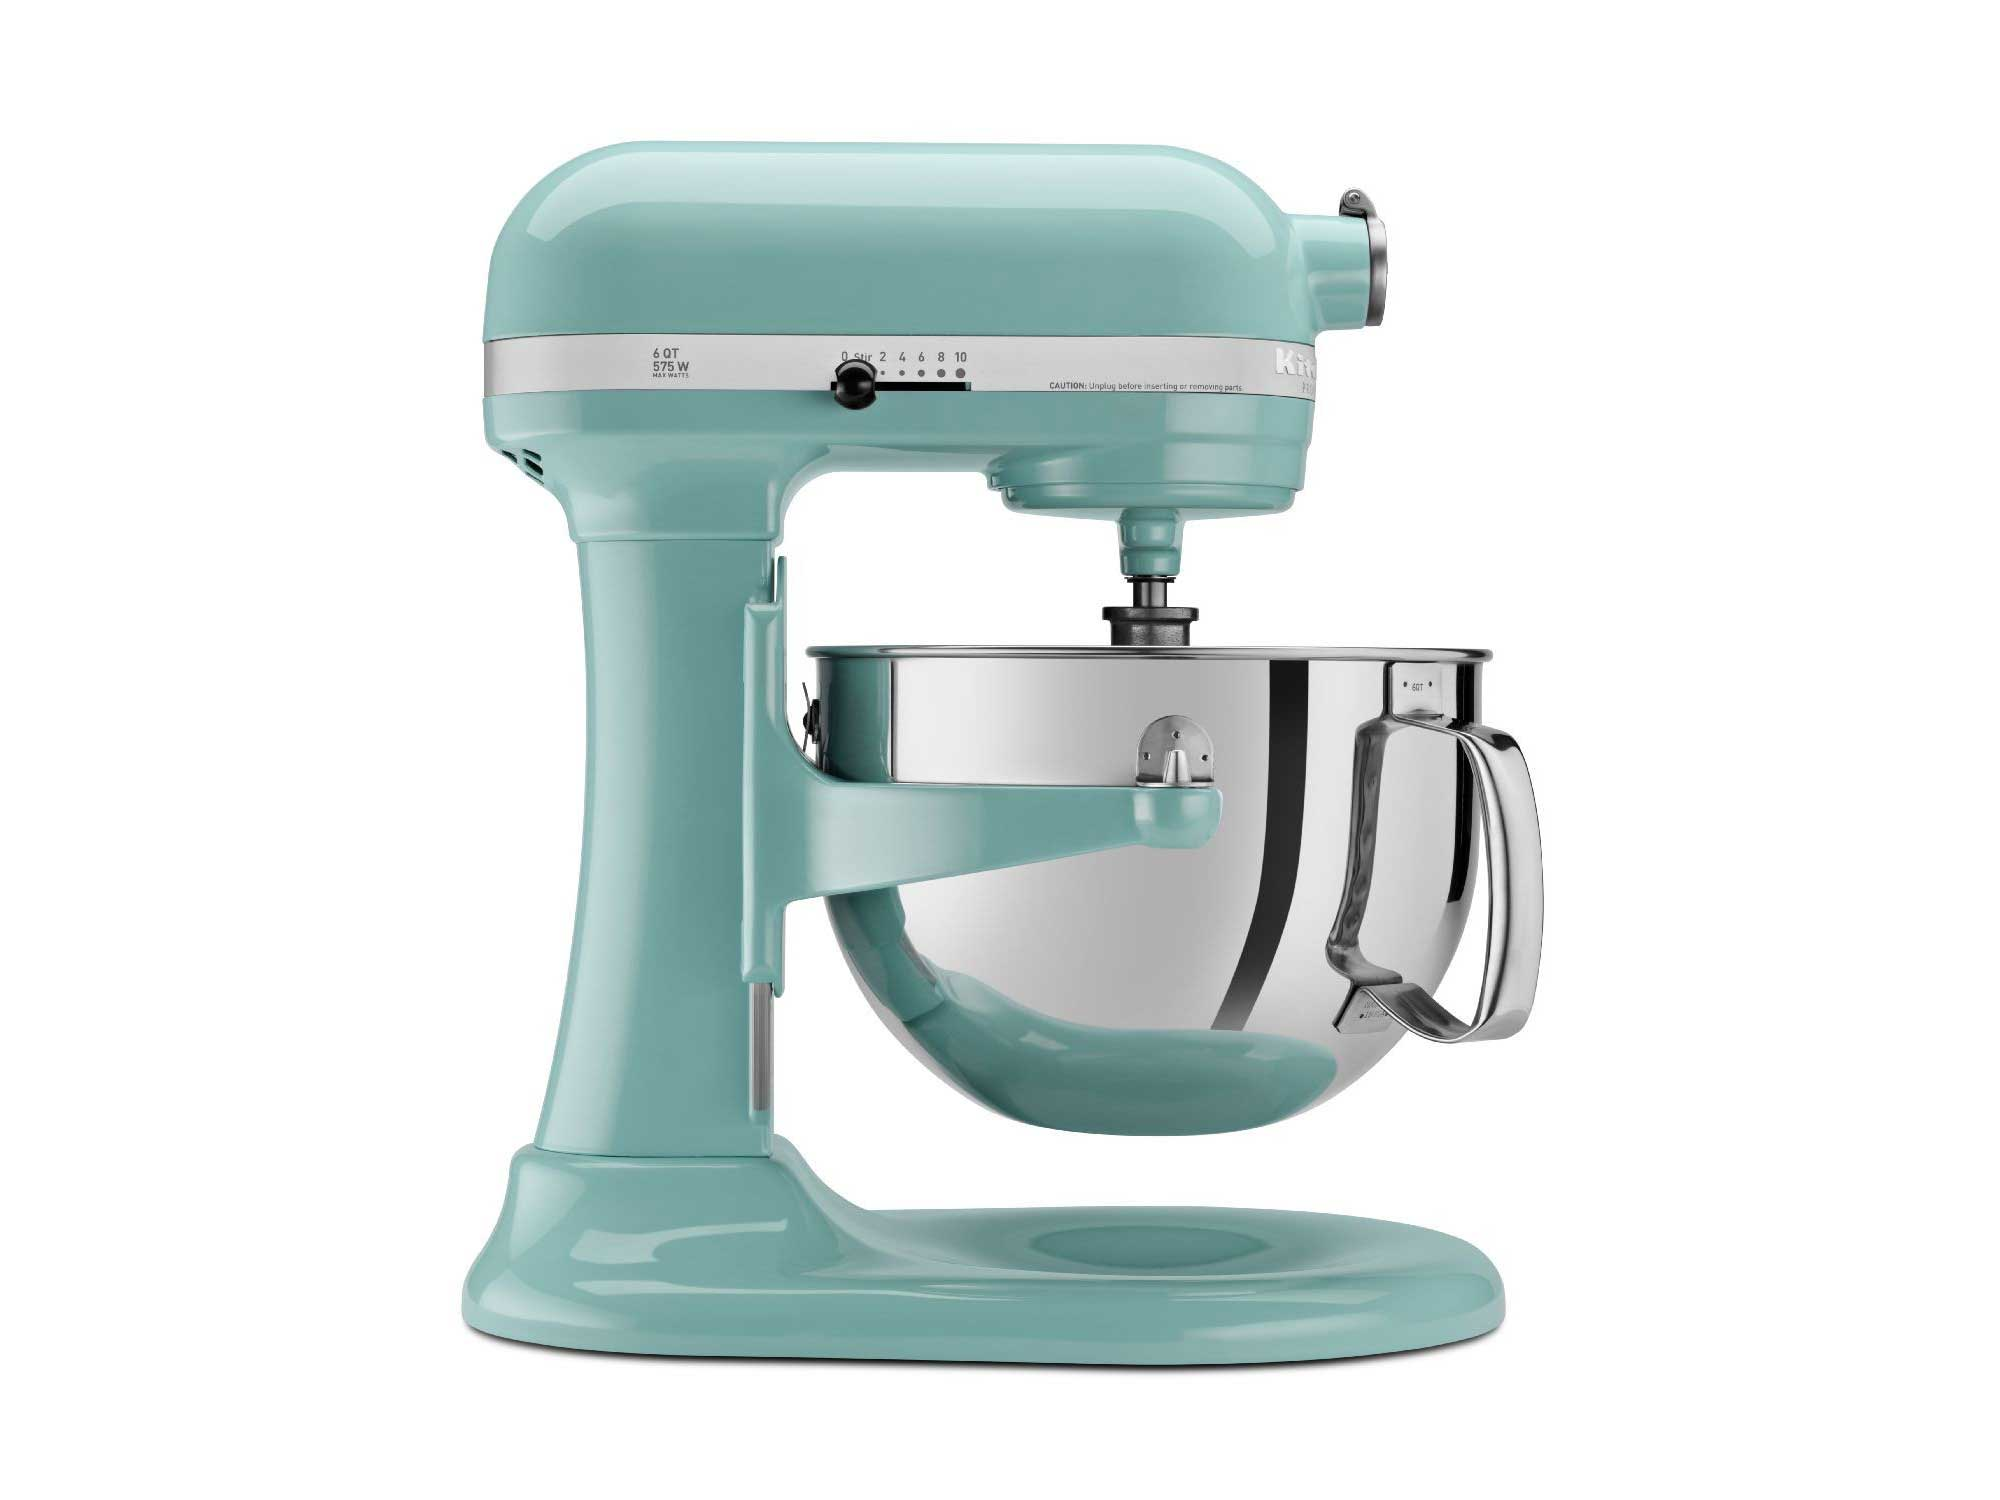 SAVEUR Gift Guides: Baking Tools for Better Desserts